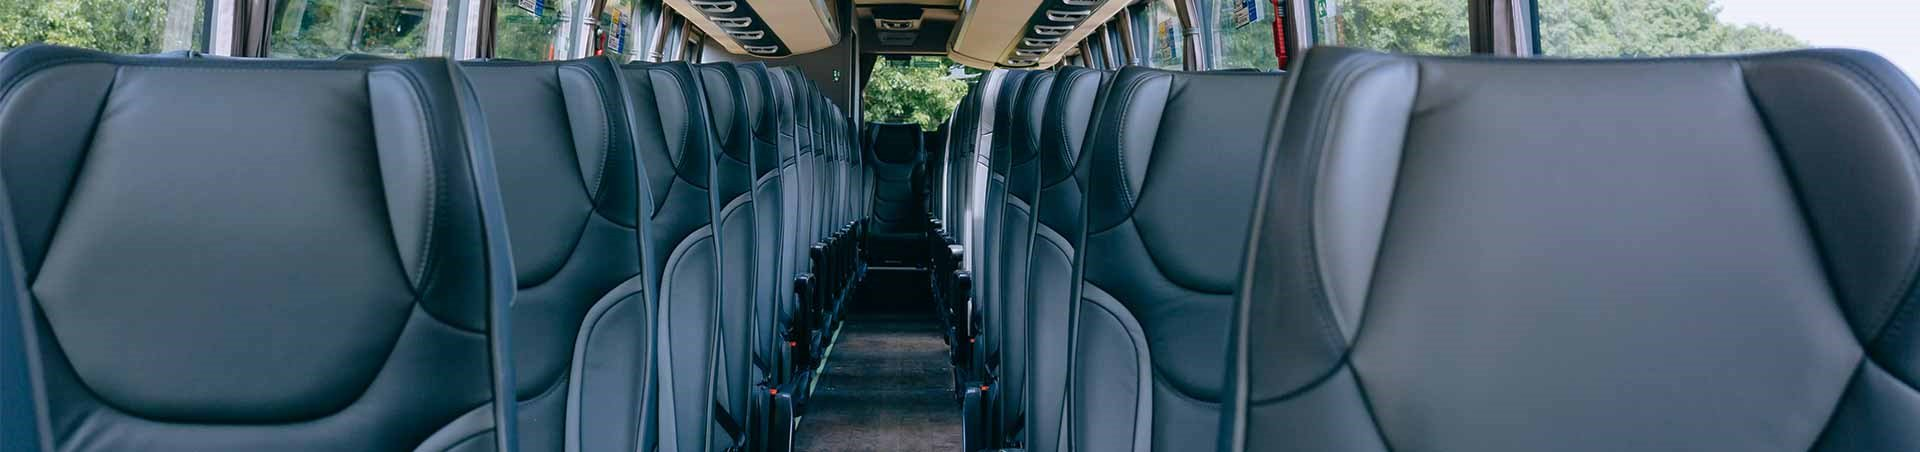 Travel across the UK and Europe with National Express coaches